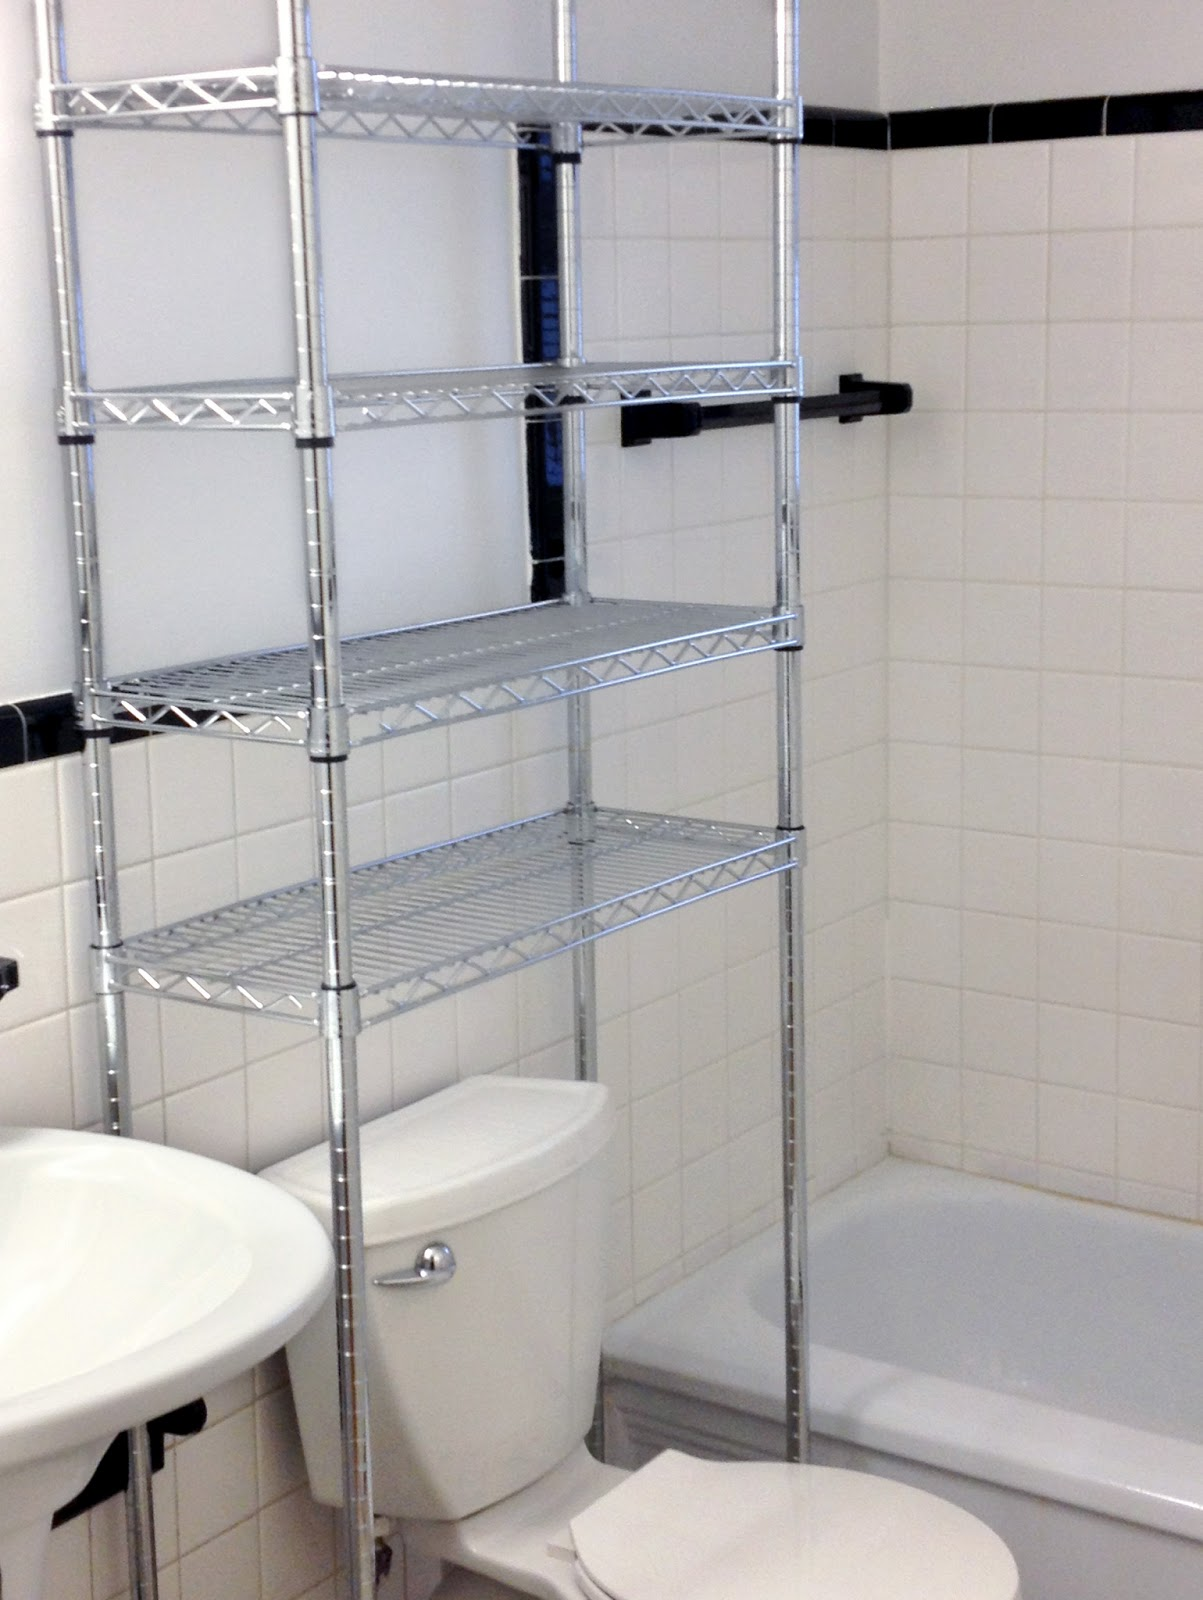 This Customer Added Tons Of Bathroom Storage With Over Toilet Wire Shelving